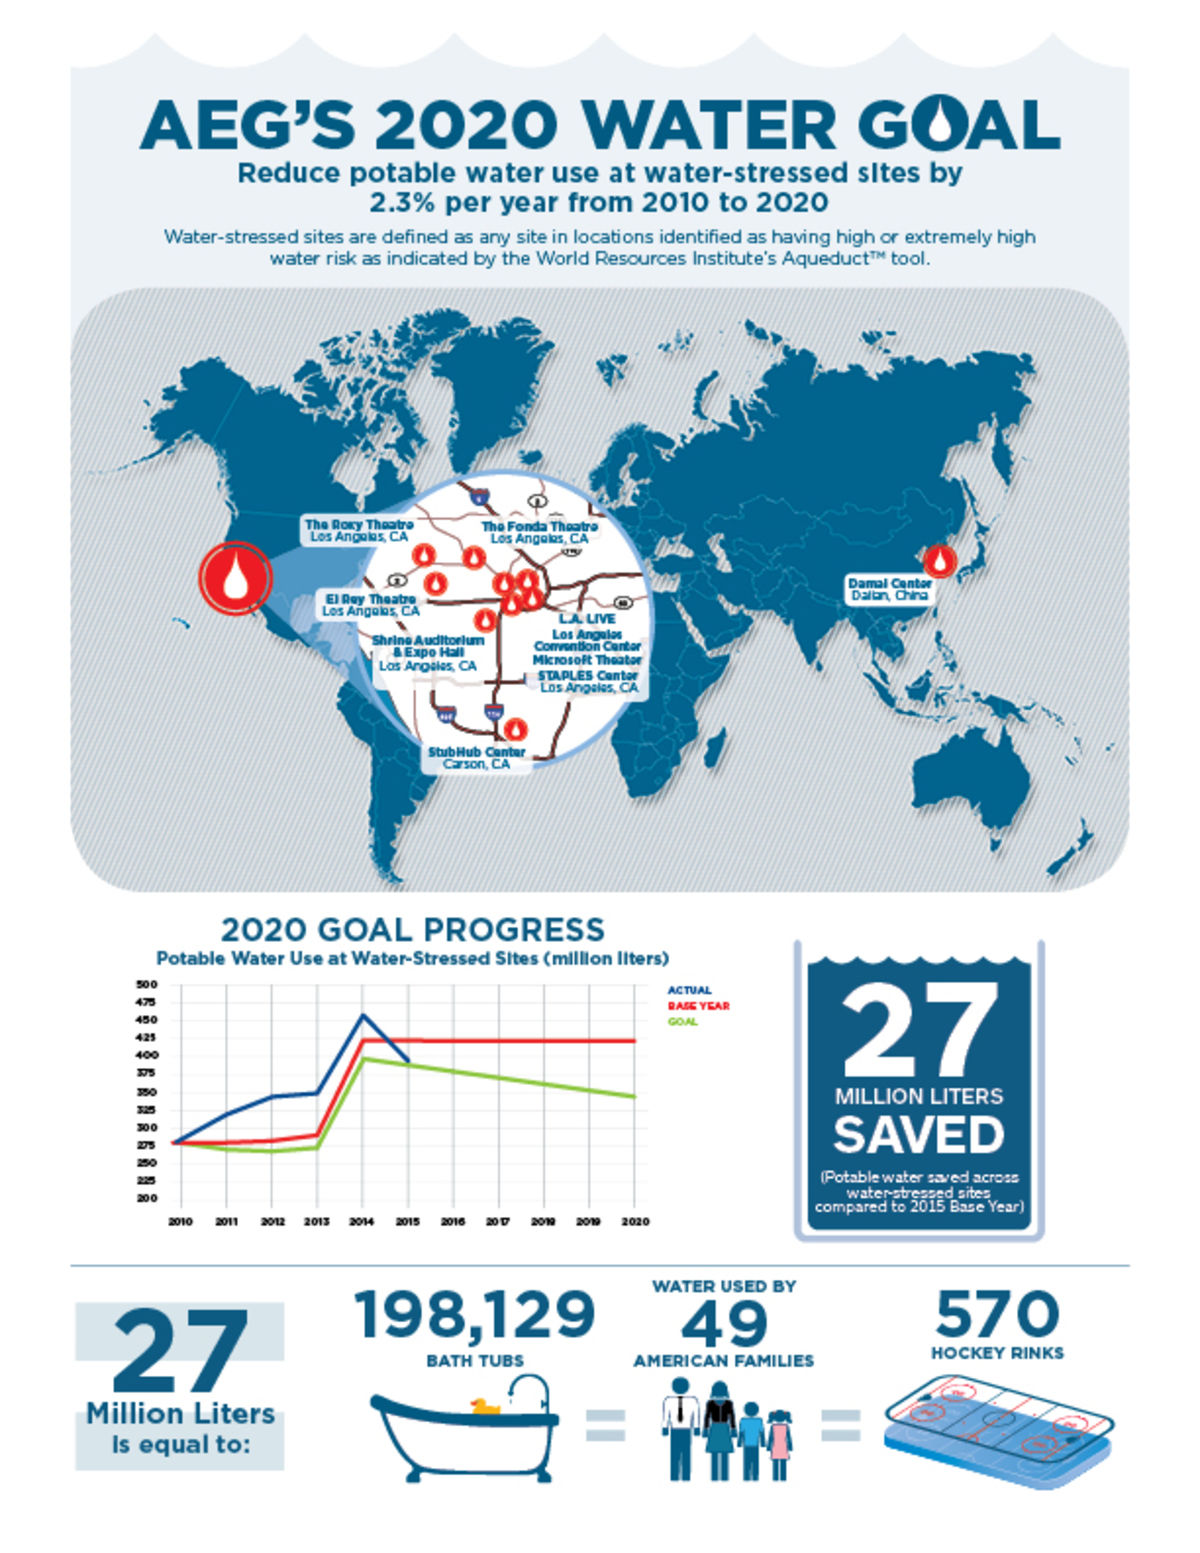 AEG outlines its 2020 Water Goal to reduce potable water use at water-stressed sites by 2.3% per year from 2010 to 2020 with an infographic illustrating 27 million liters of potable water saved compared to 2015 Base Year.